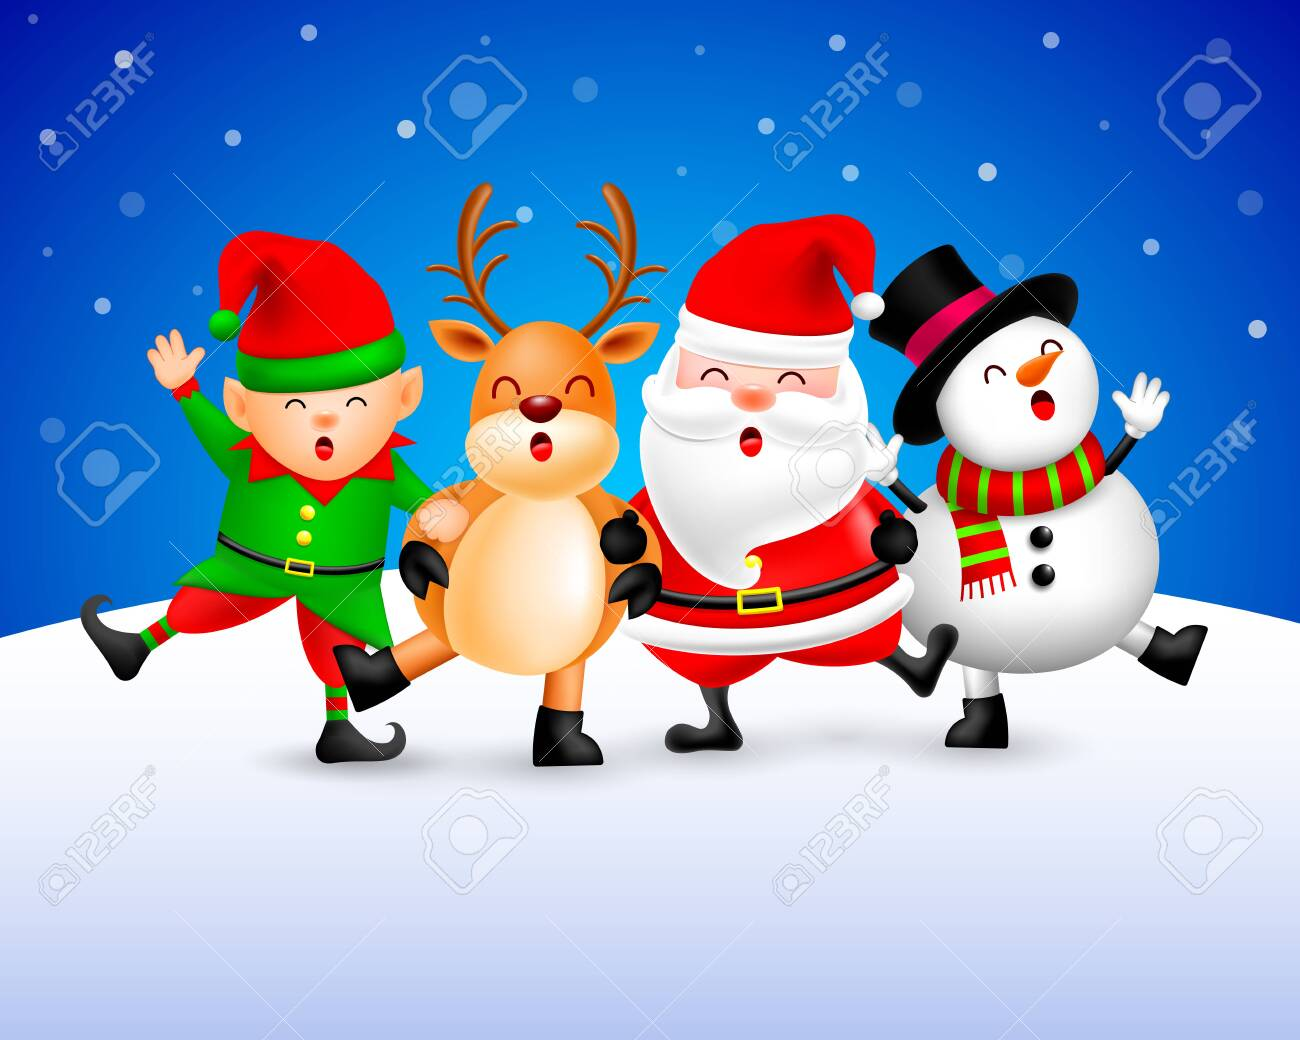 Funny Christmas Images.Funny Christmas Characters Design On Snow Background Santa Claus